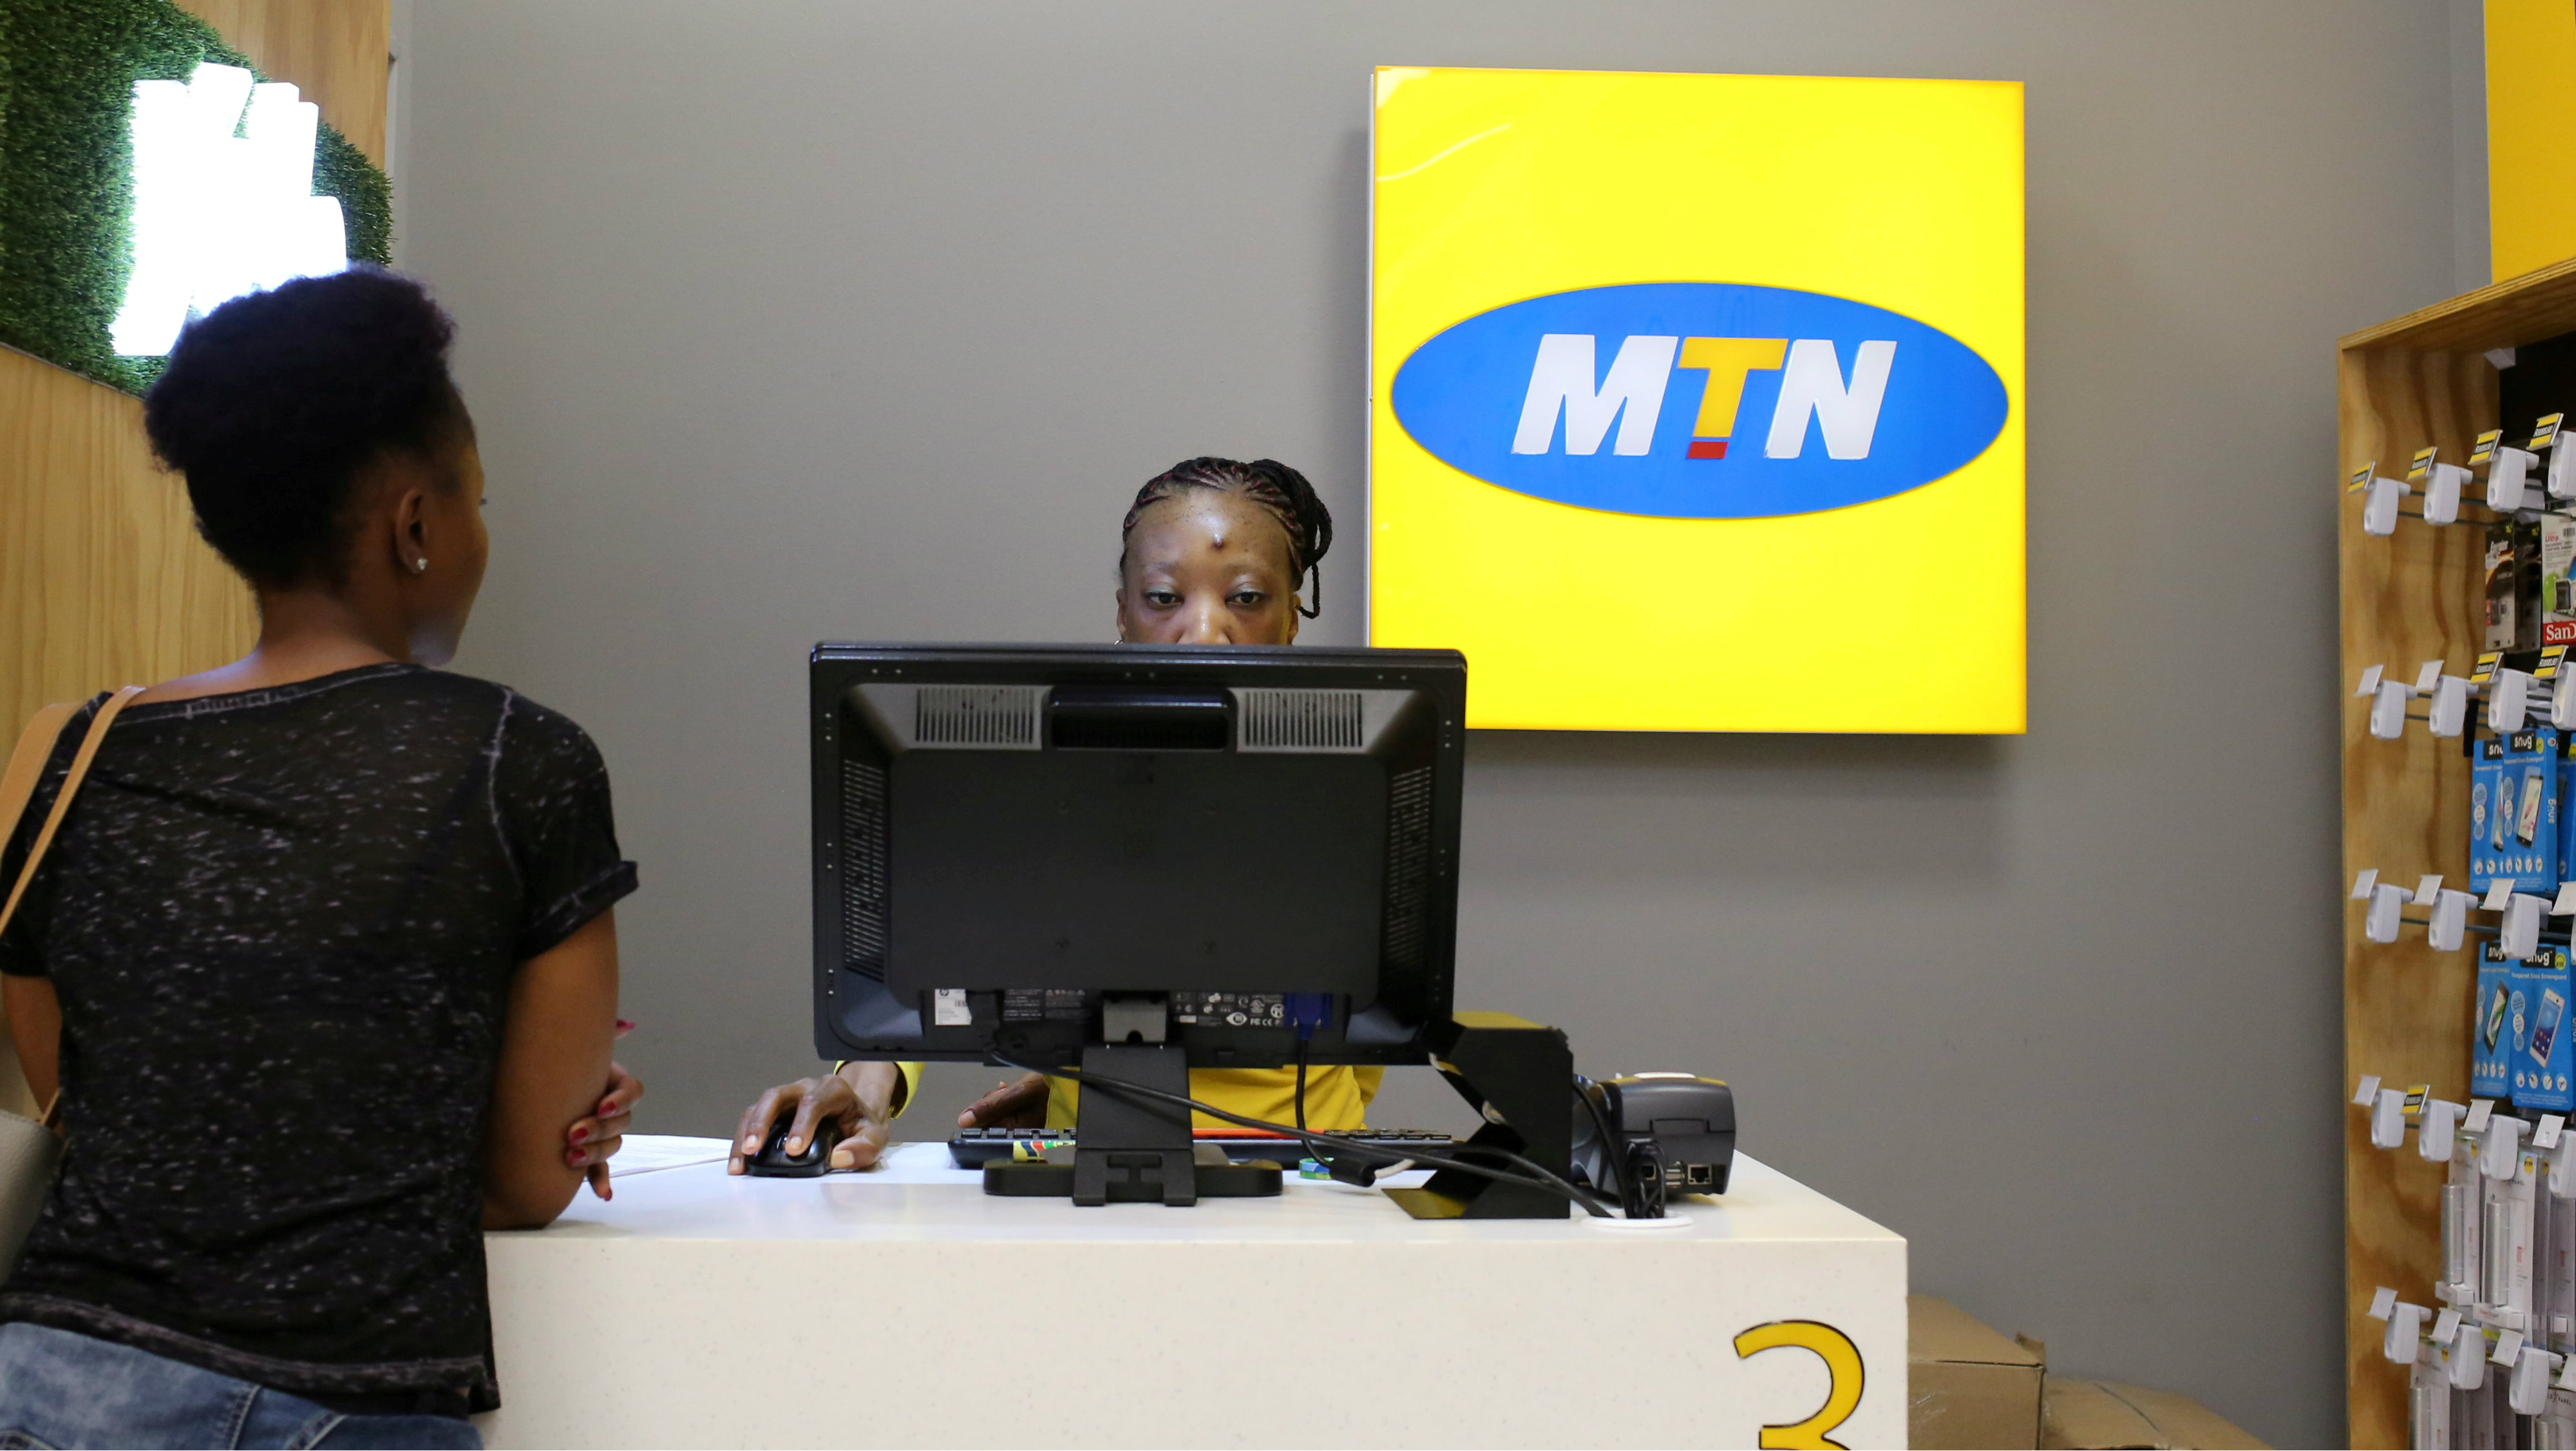 Mtn Ghana Images - Reverse Search